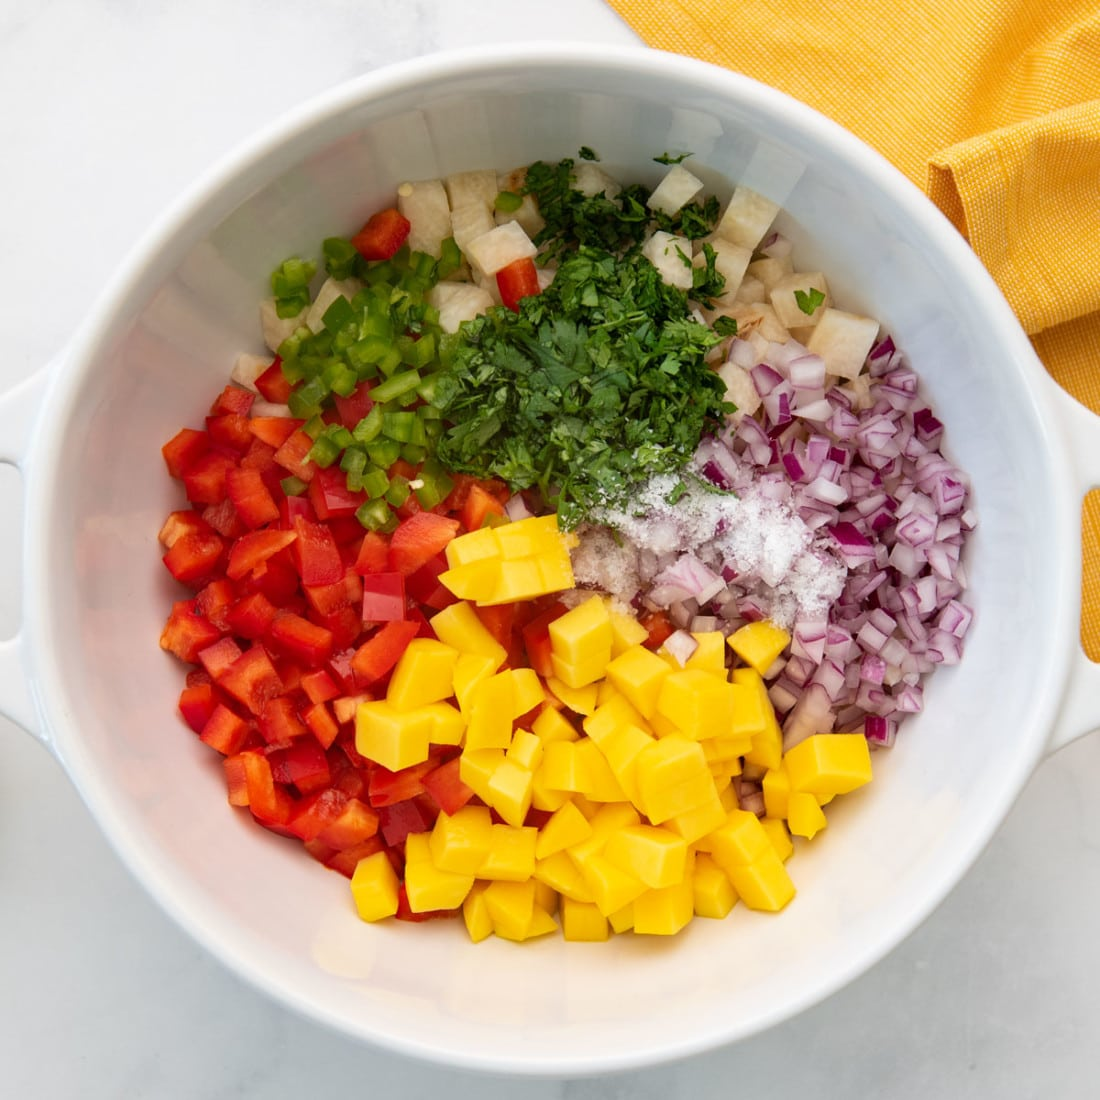 bowl with chopped produce and seasoning